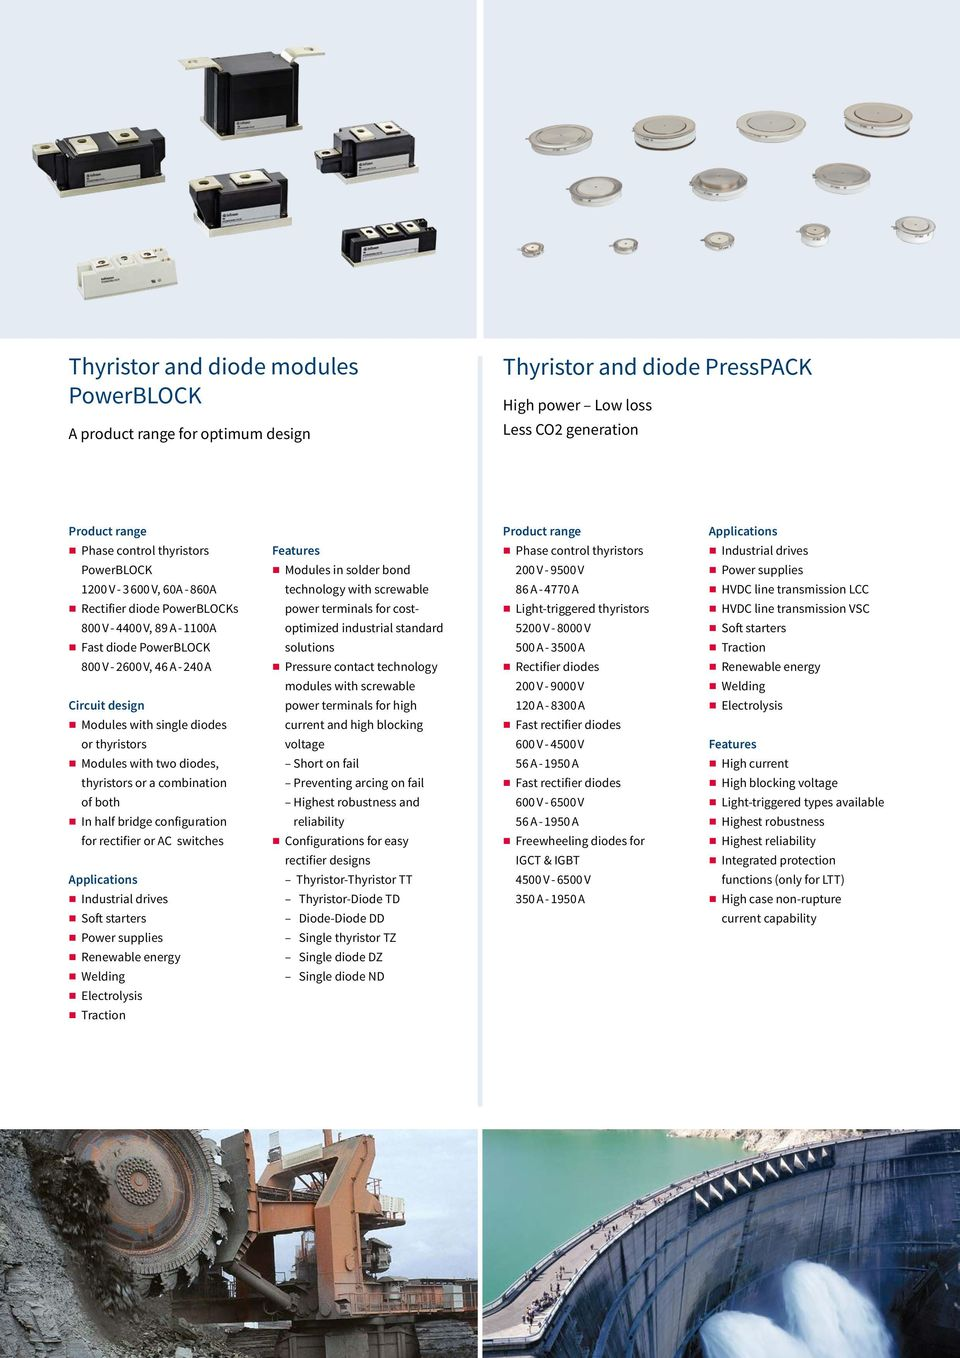 termials for cost- Light-triggered thyristors HVDC lie trasmissio VSC 800 V - 4400 V, 89 A - 1100A optimized idustrial stadard 5200 V - 8000 V Soft starters Fast diode PowerBLOCK solutios 500 A -